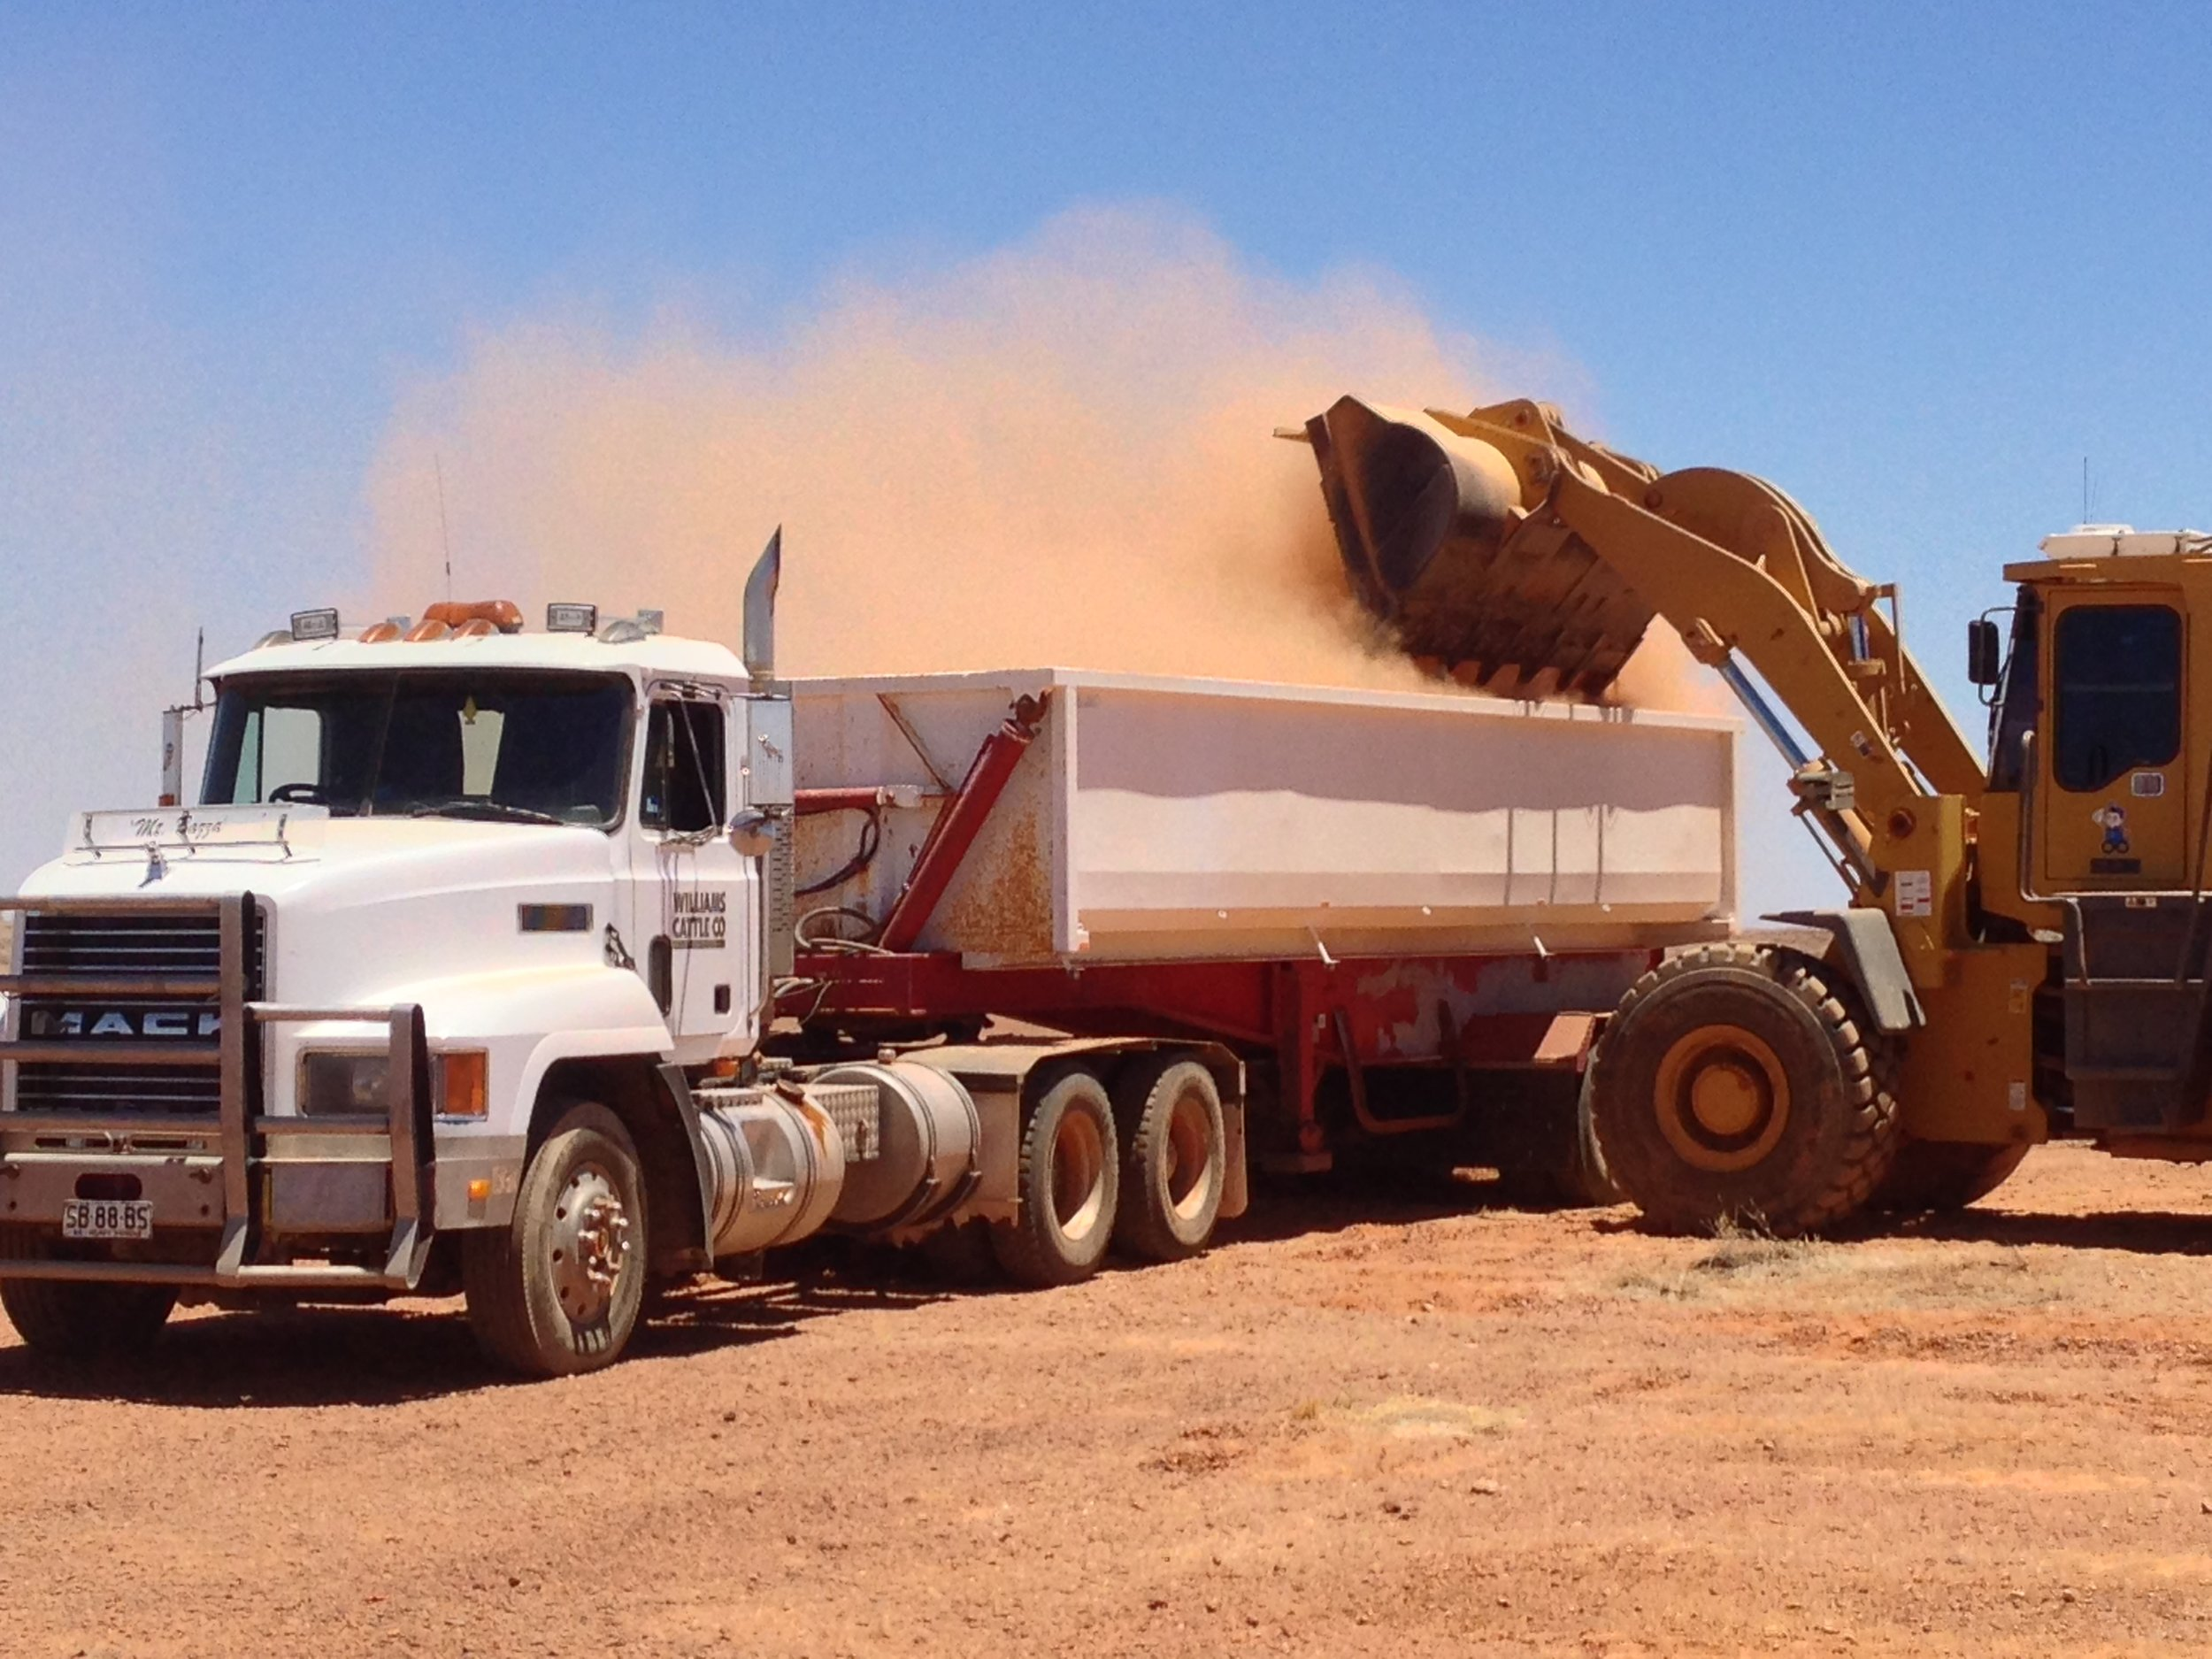 williams-cattle-company-mount-barry-station-south-australia-cattle-station-sa-plant-and-equipment-side-tipper-and-loader.jpg